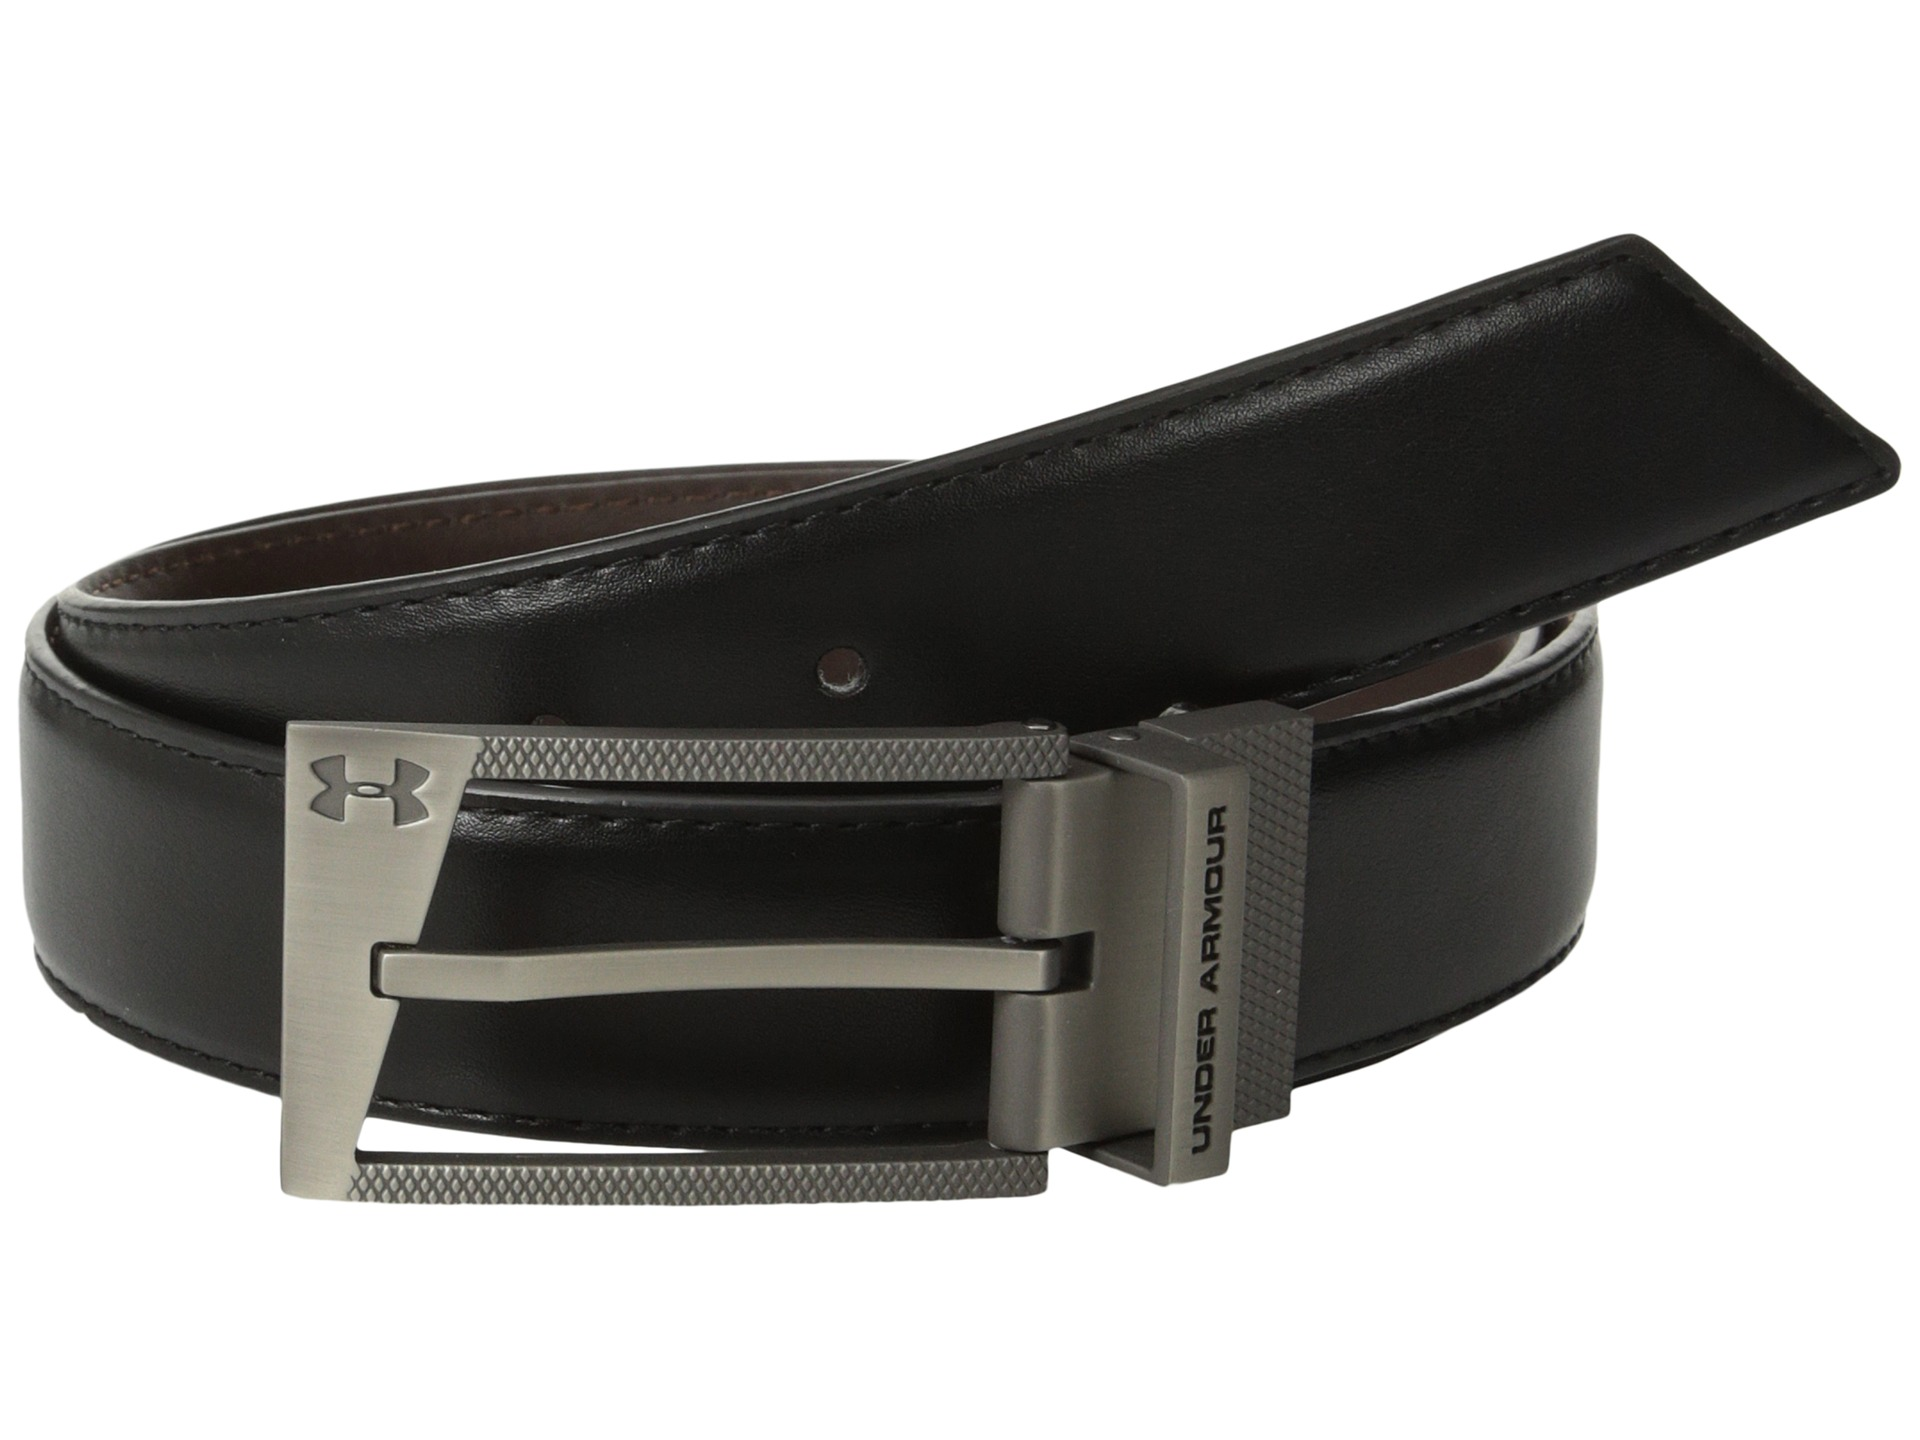 a3dab5e68b16 under armour belt cheap   OFF35% The Largest Catalog Discounts